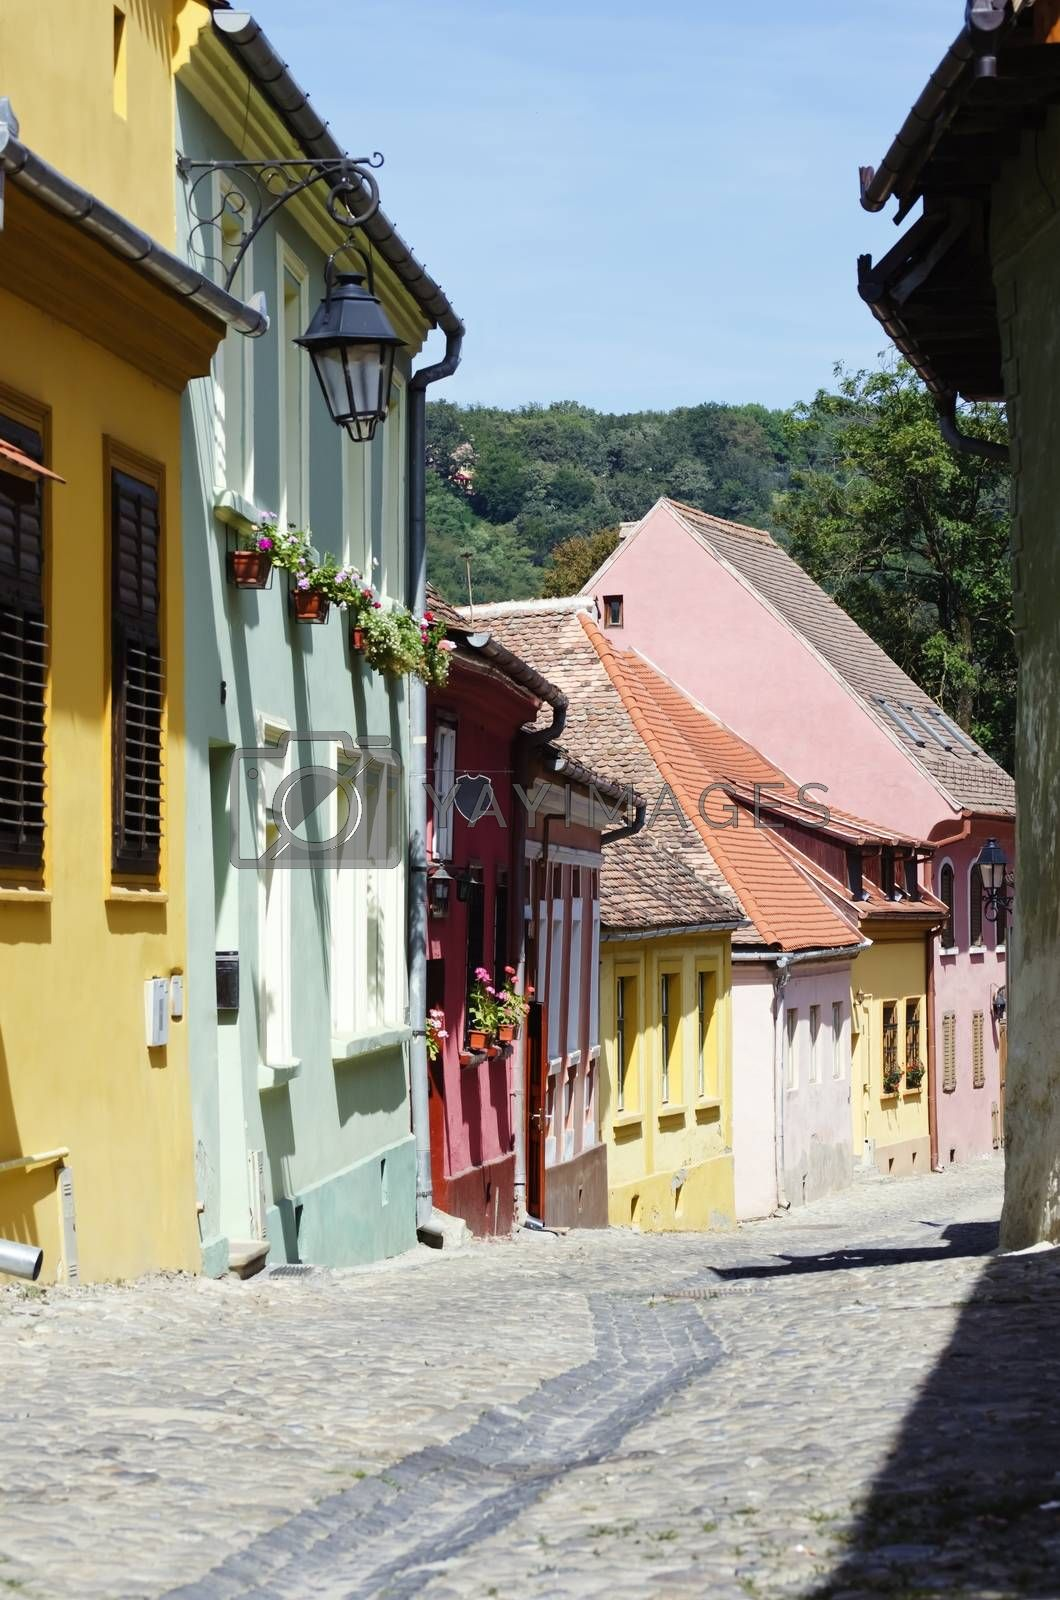 Medieval Town Sighisoara in Romania,Transylvania - September 2014: one of the few still inhabited citadels in Europe, UNESCO World Heritage Site